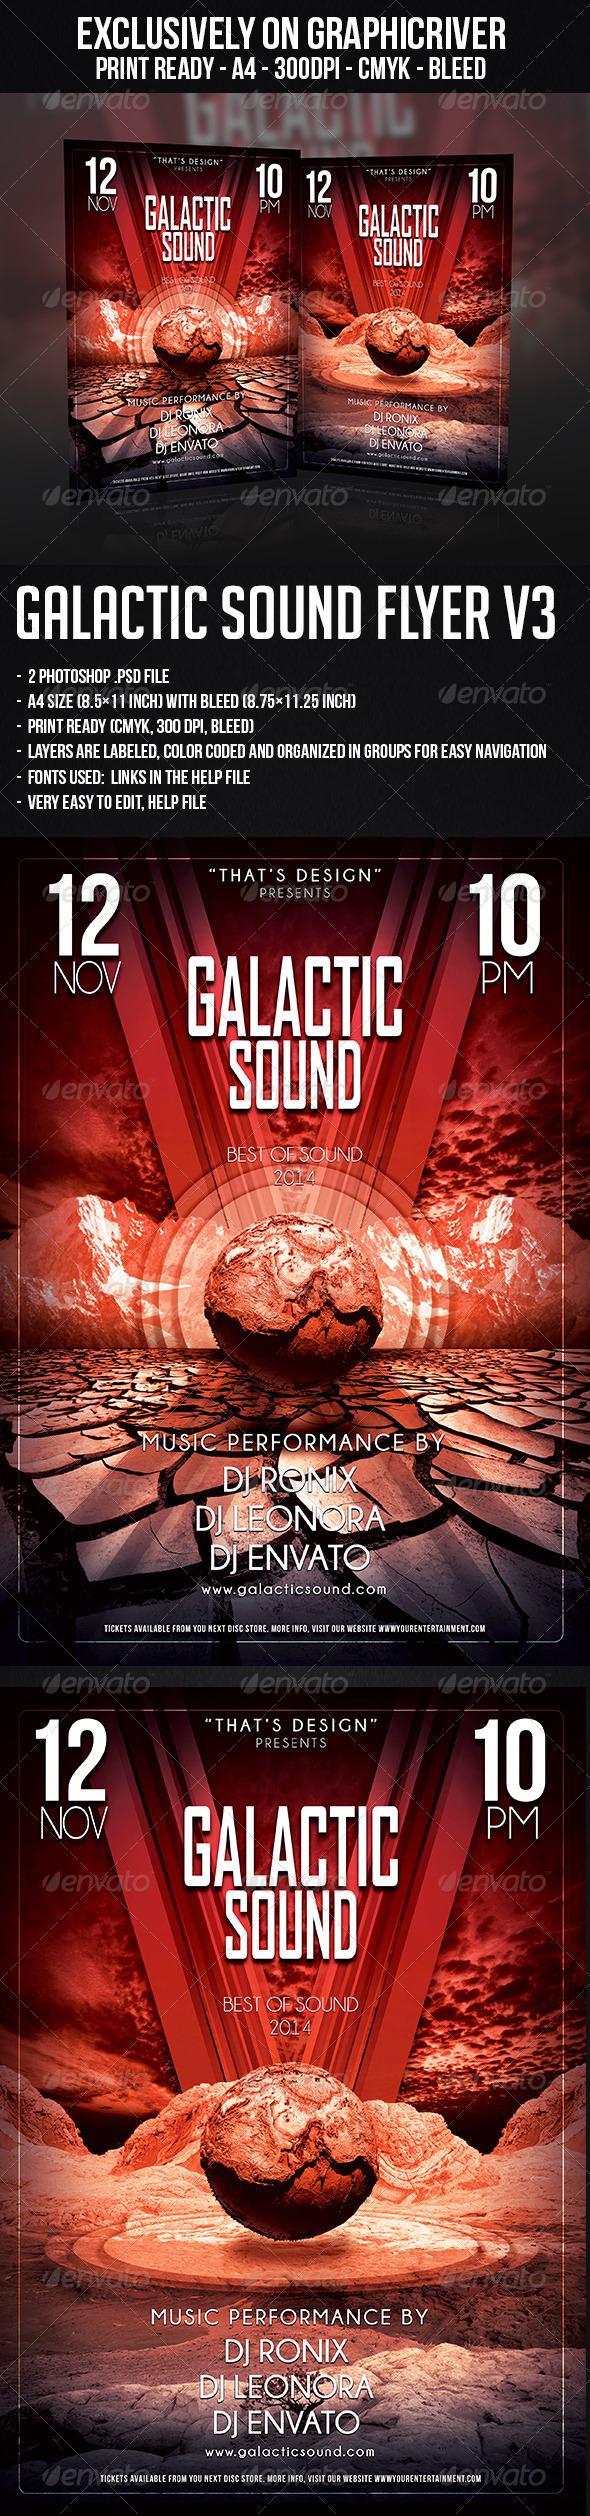 Galactic Sound Flyer V3 - Clubs & Parties Events